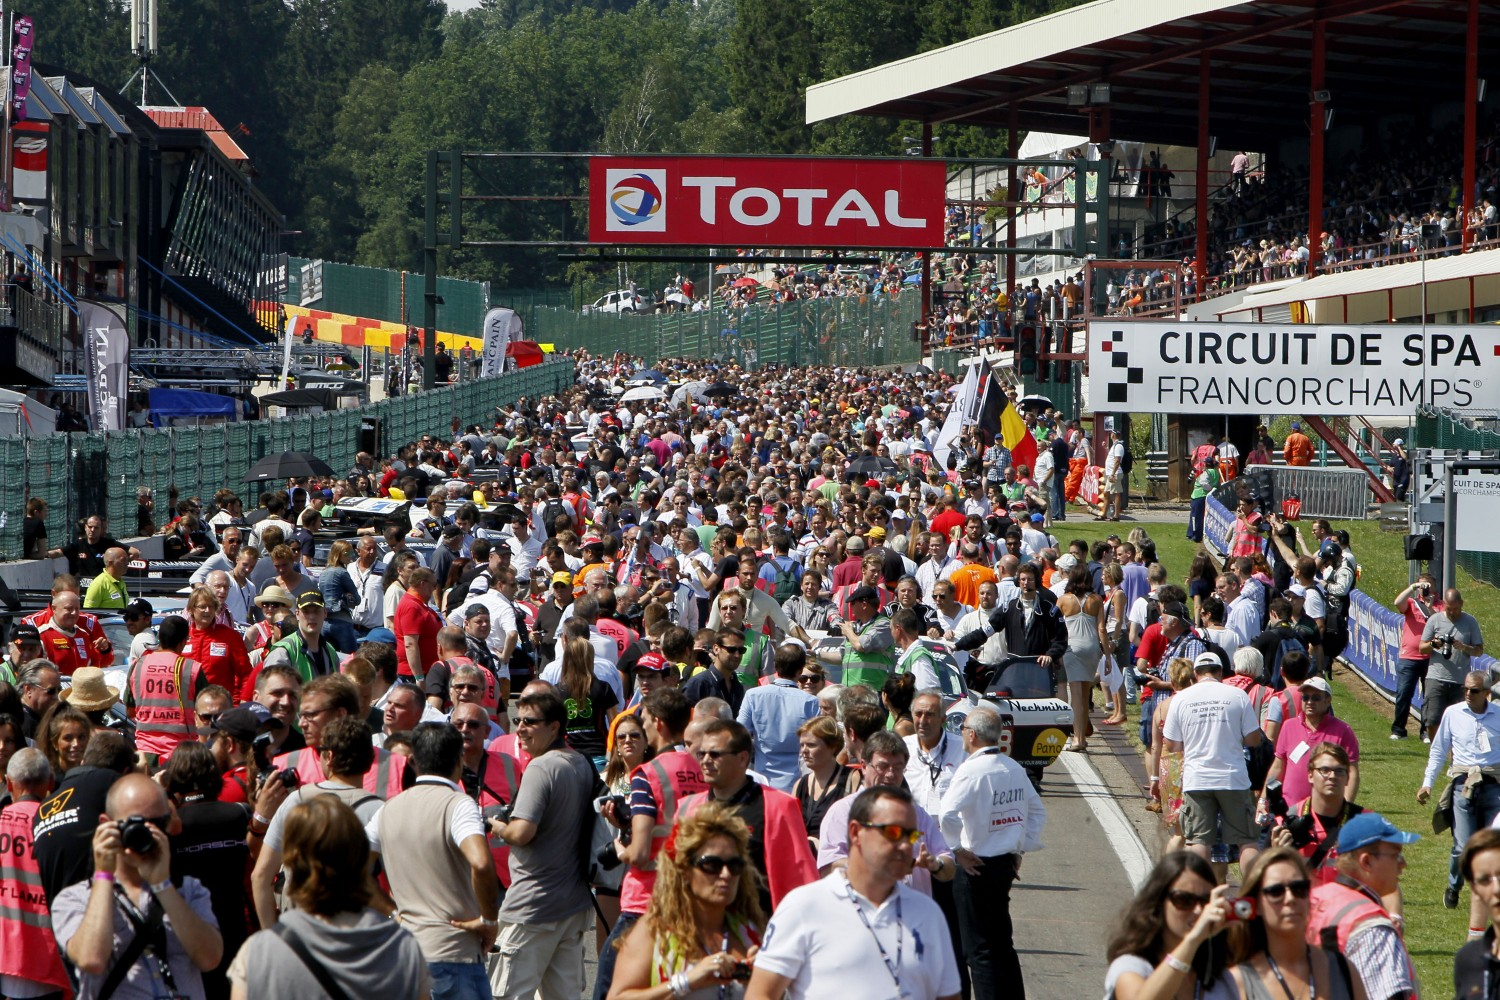 Total renews title sponsorship of the Total 24 Hours of Spa